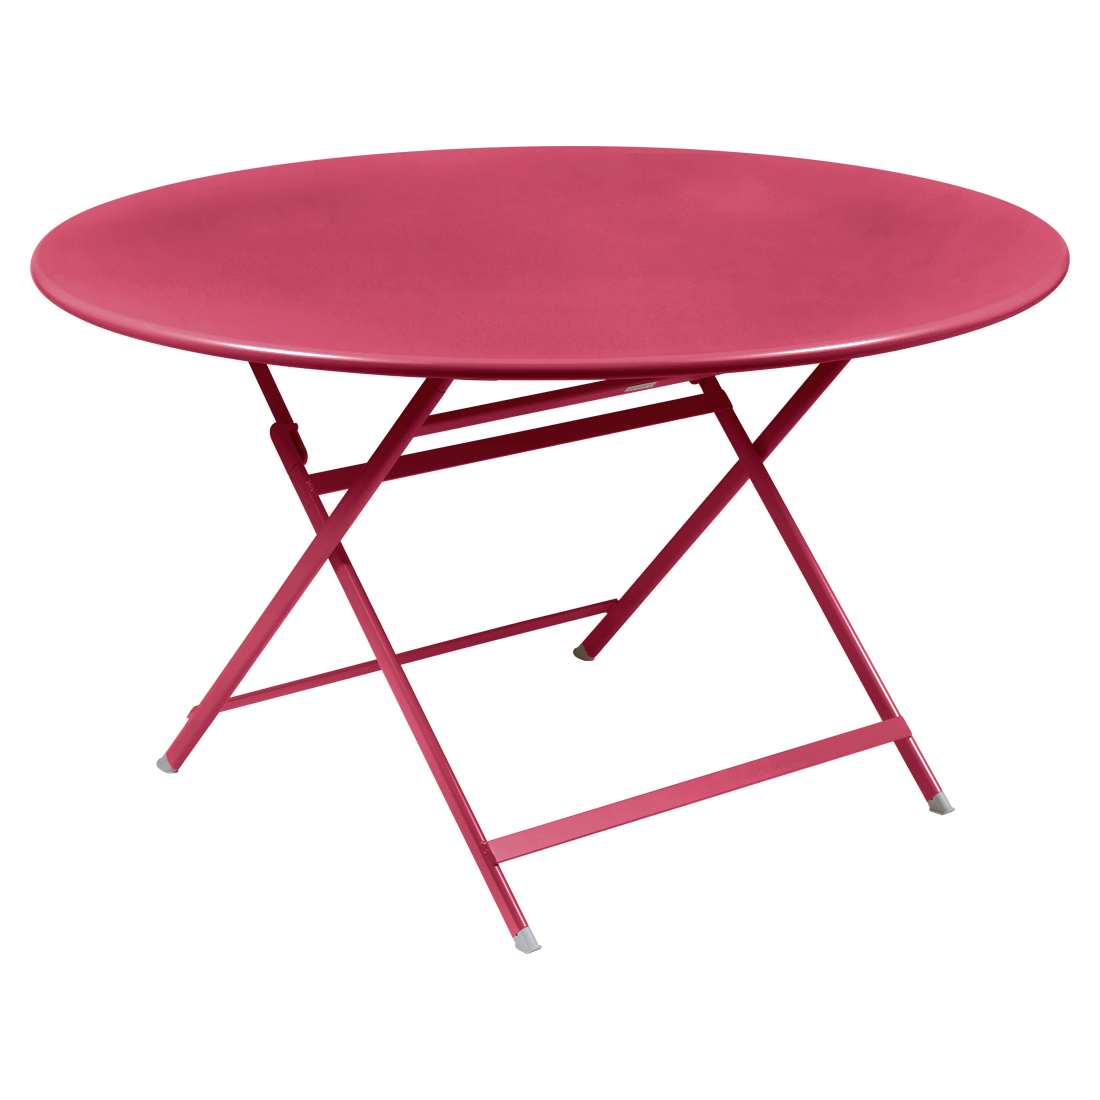 table de jardin pliante, table metal ronde, table metal 7 personnes, table de jardin rose, table metal rose